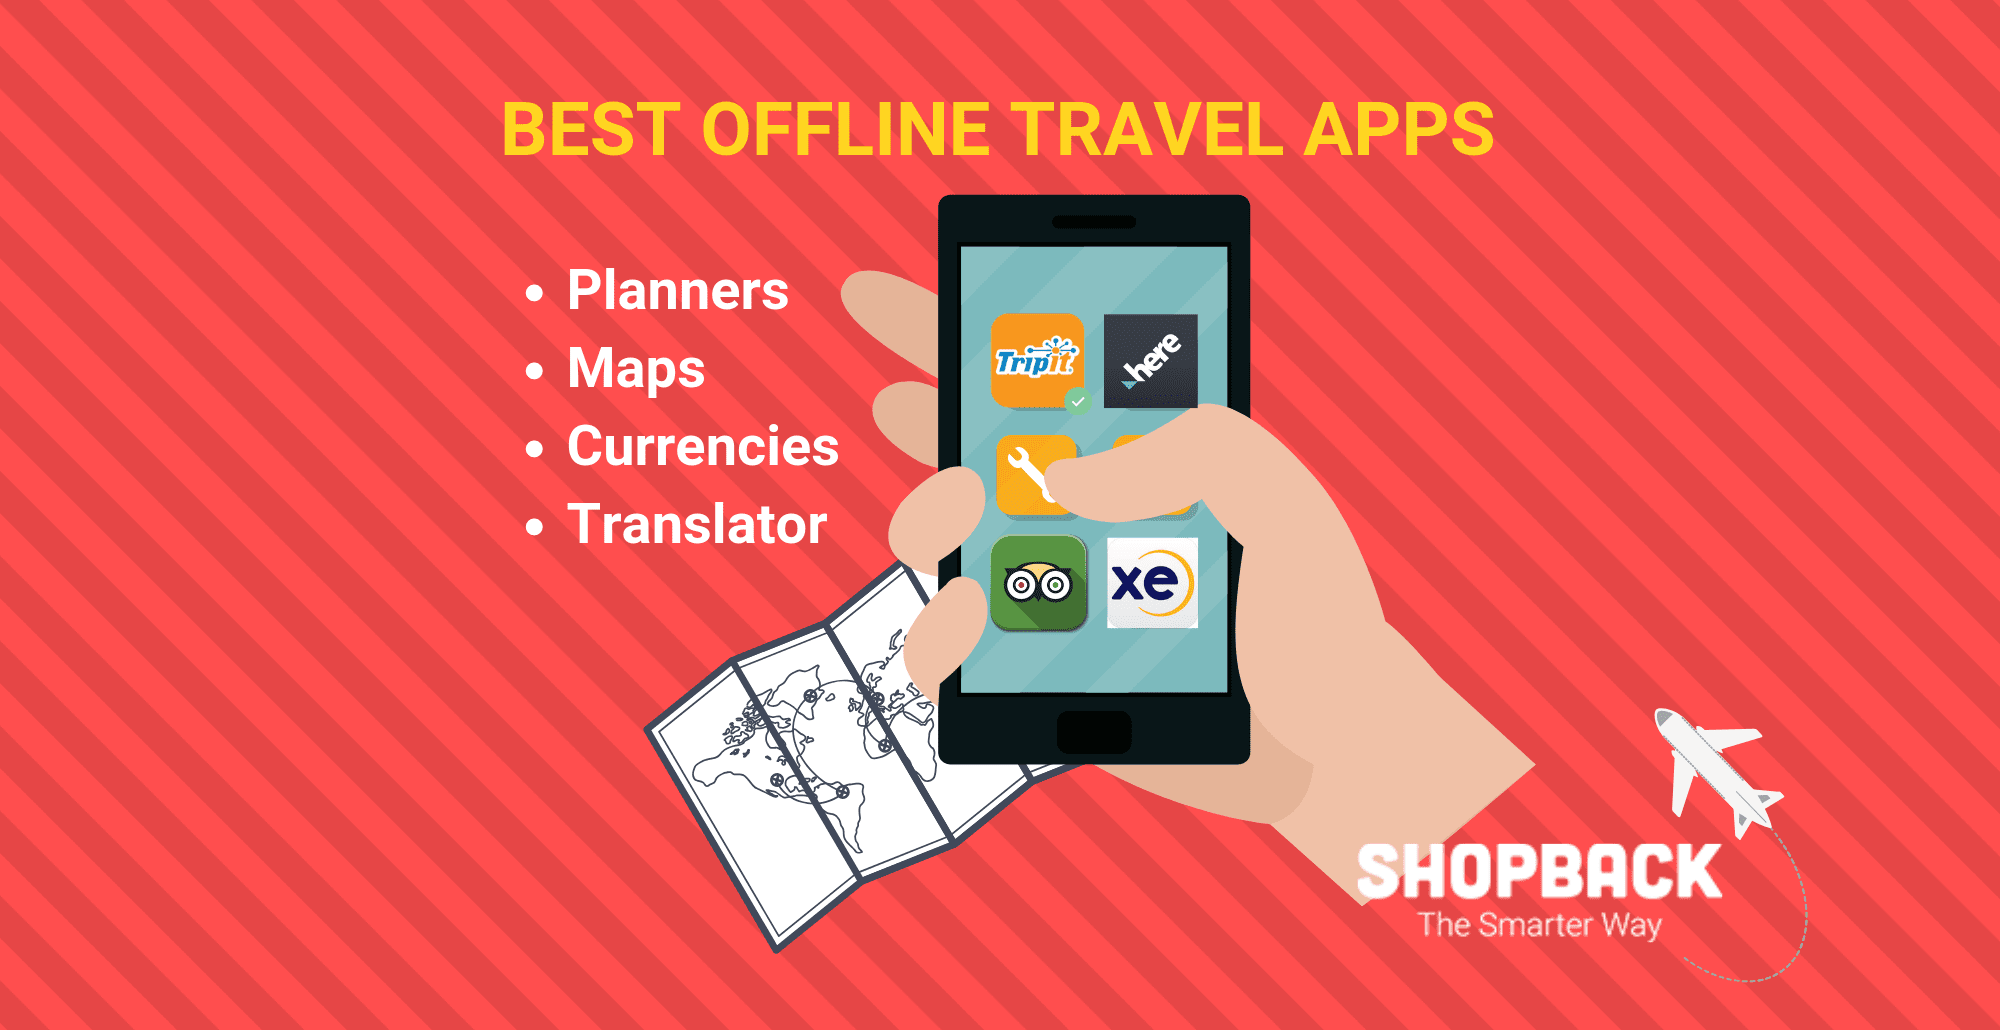 No Data? Here Are The Best Travel Apps That Work Well Offline